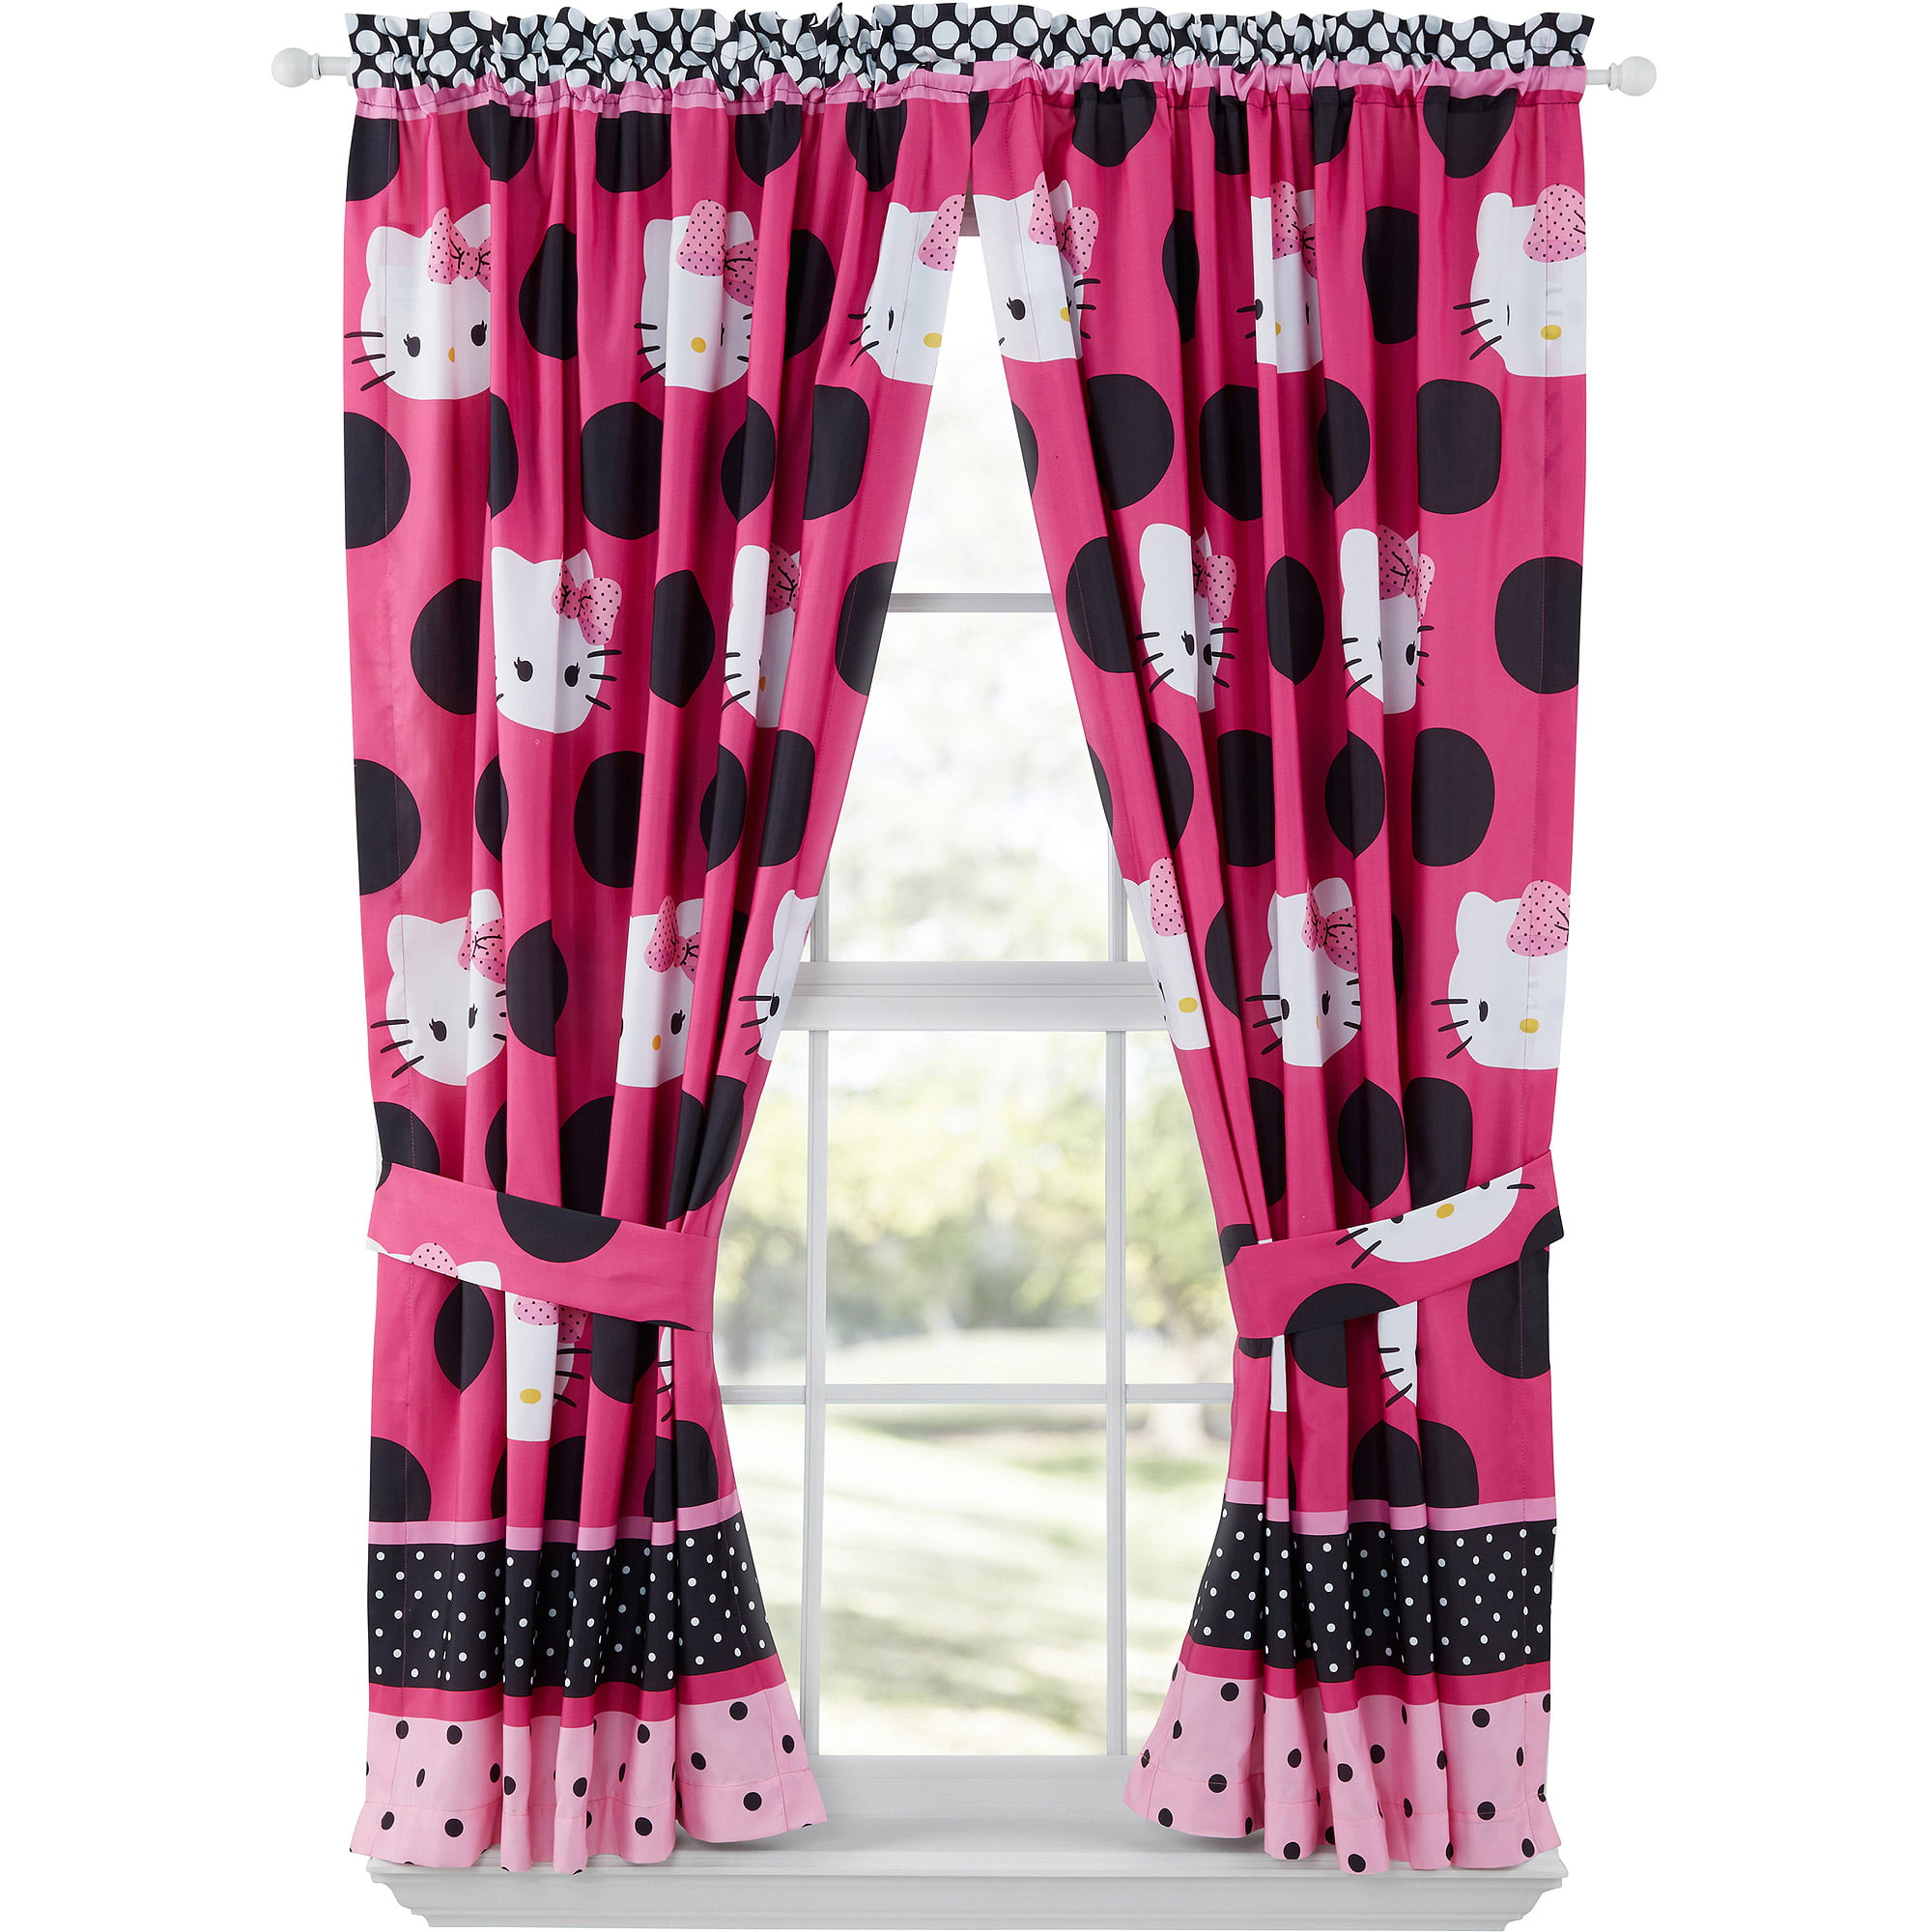 Hello Kitty Dotted in Pink Girls Bedroom Curtain Panels  Set of 2    Walmart com. Hello Kitty Dotted in Pink Girls Bedroom Curtain Panels  Set of 2